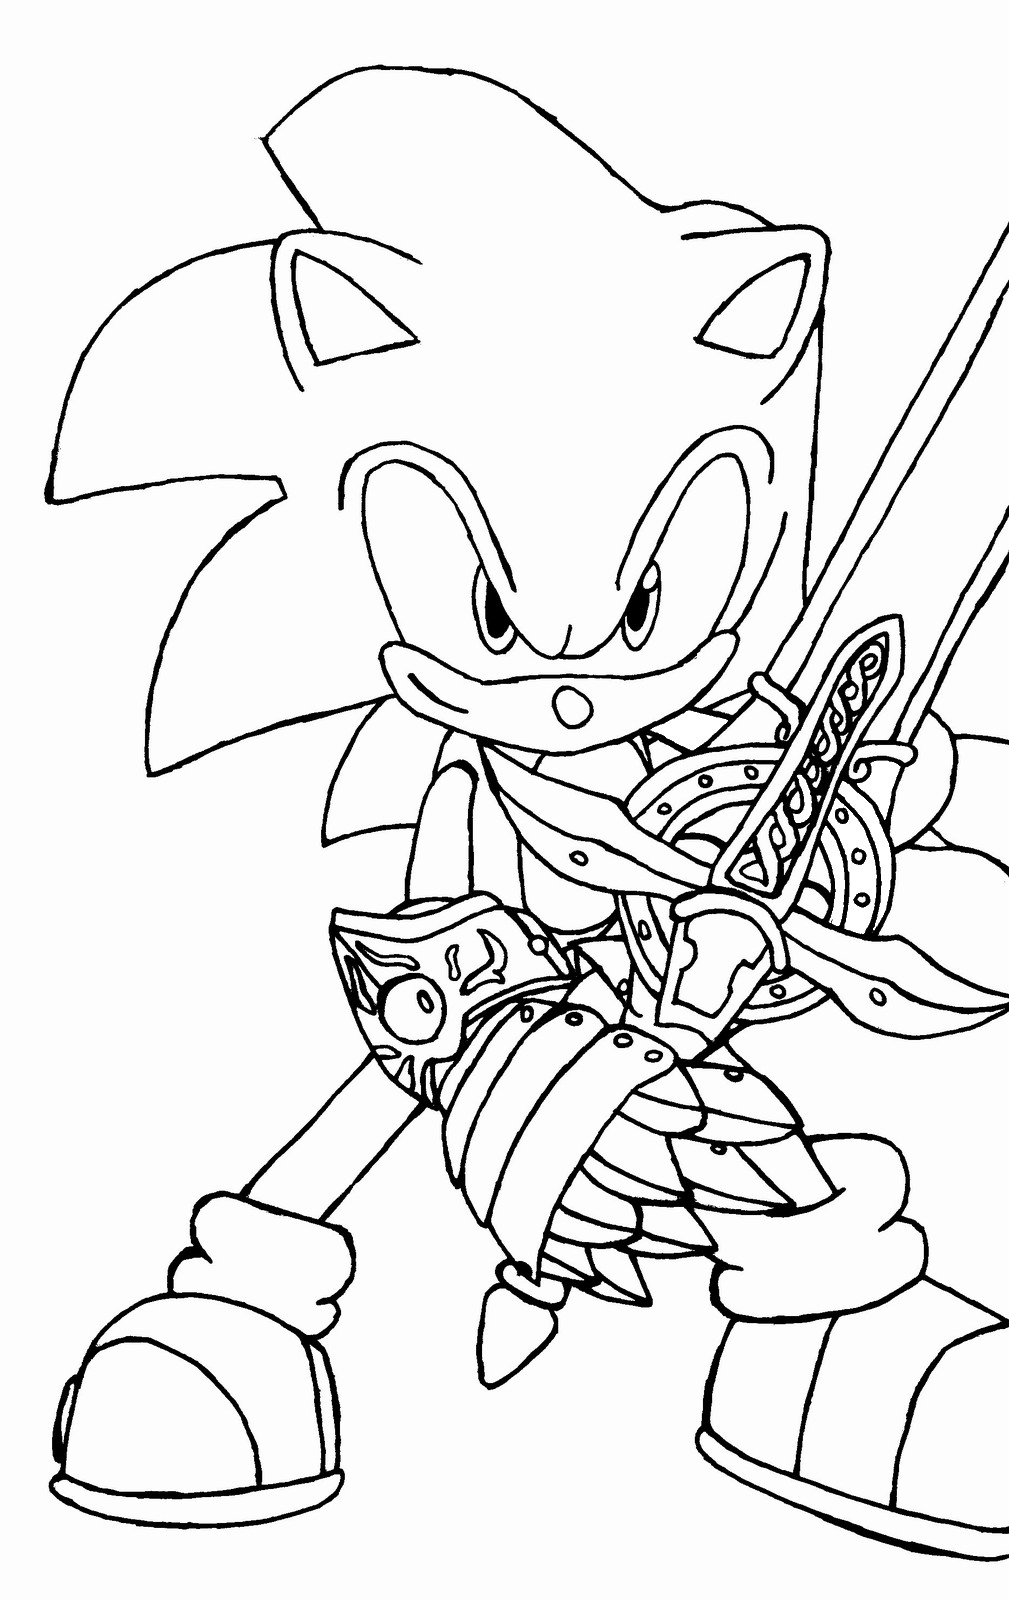 sonic the hedgehog images to color 12 free printable sonic the hedgehog coloring pages 1nza images sonic hedgehog to color the